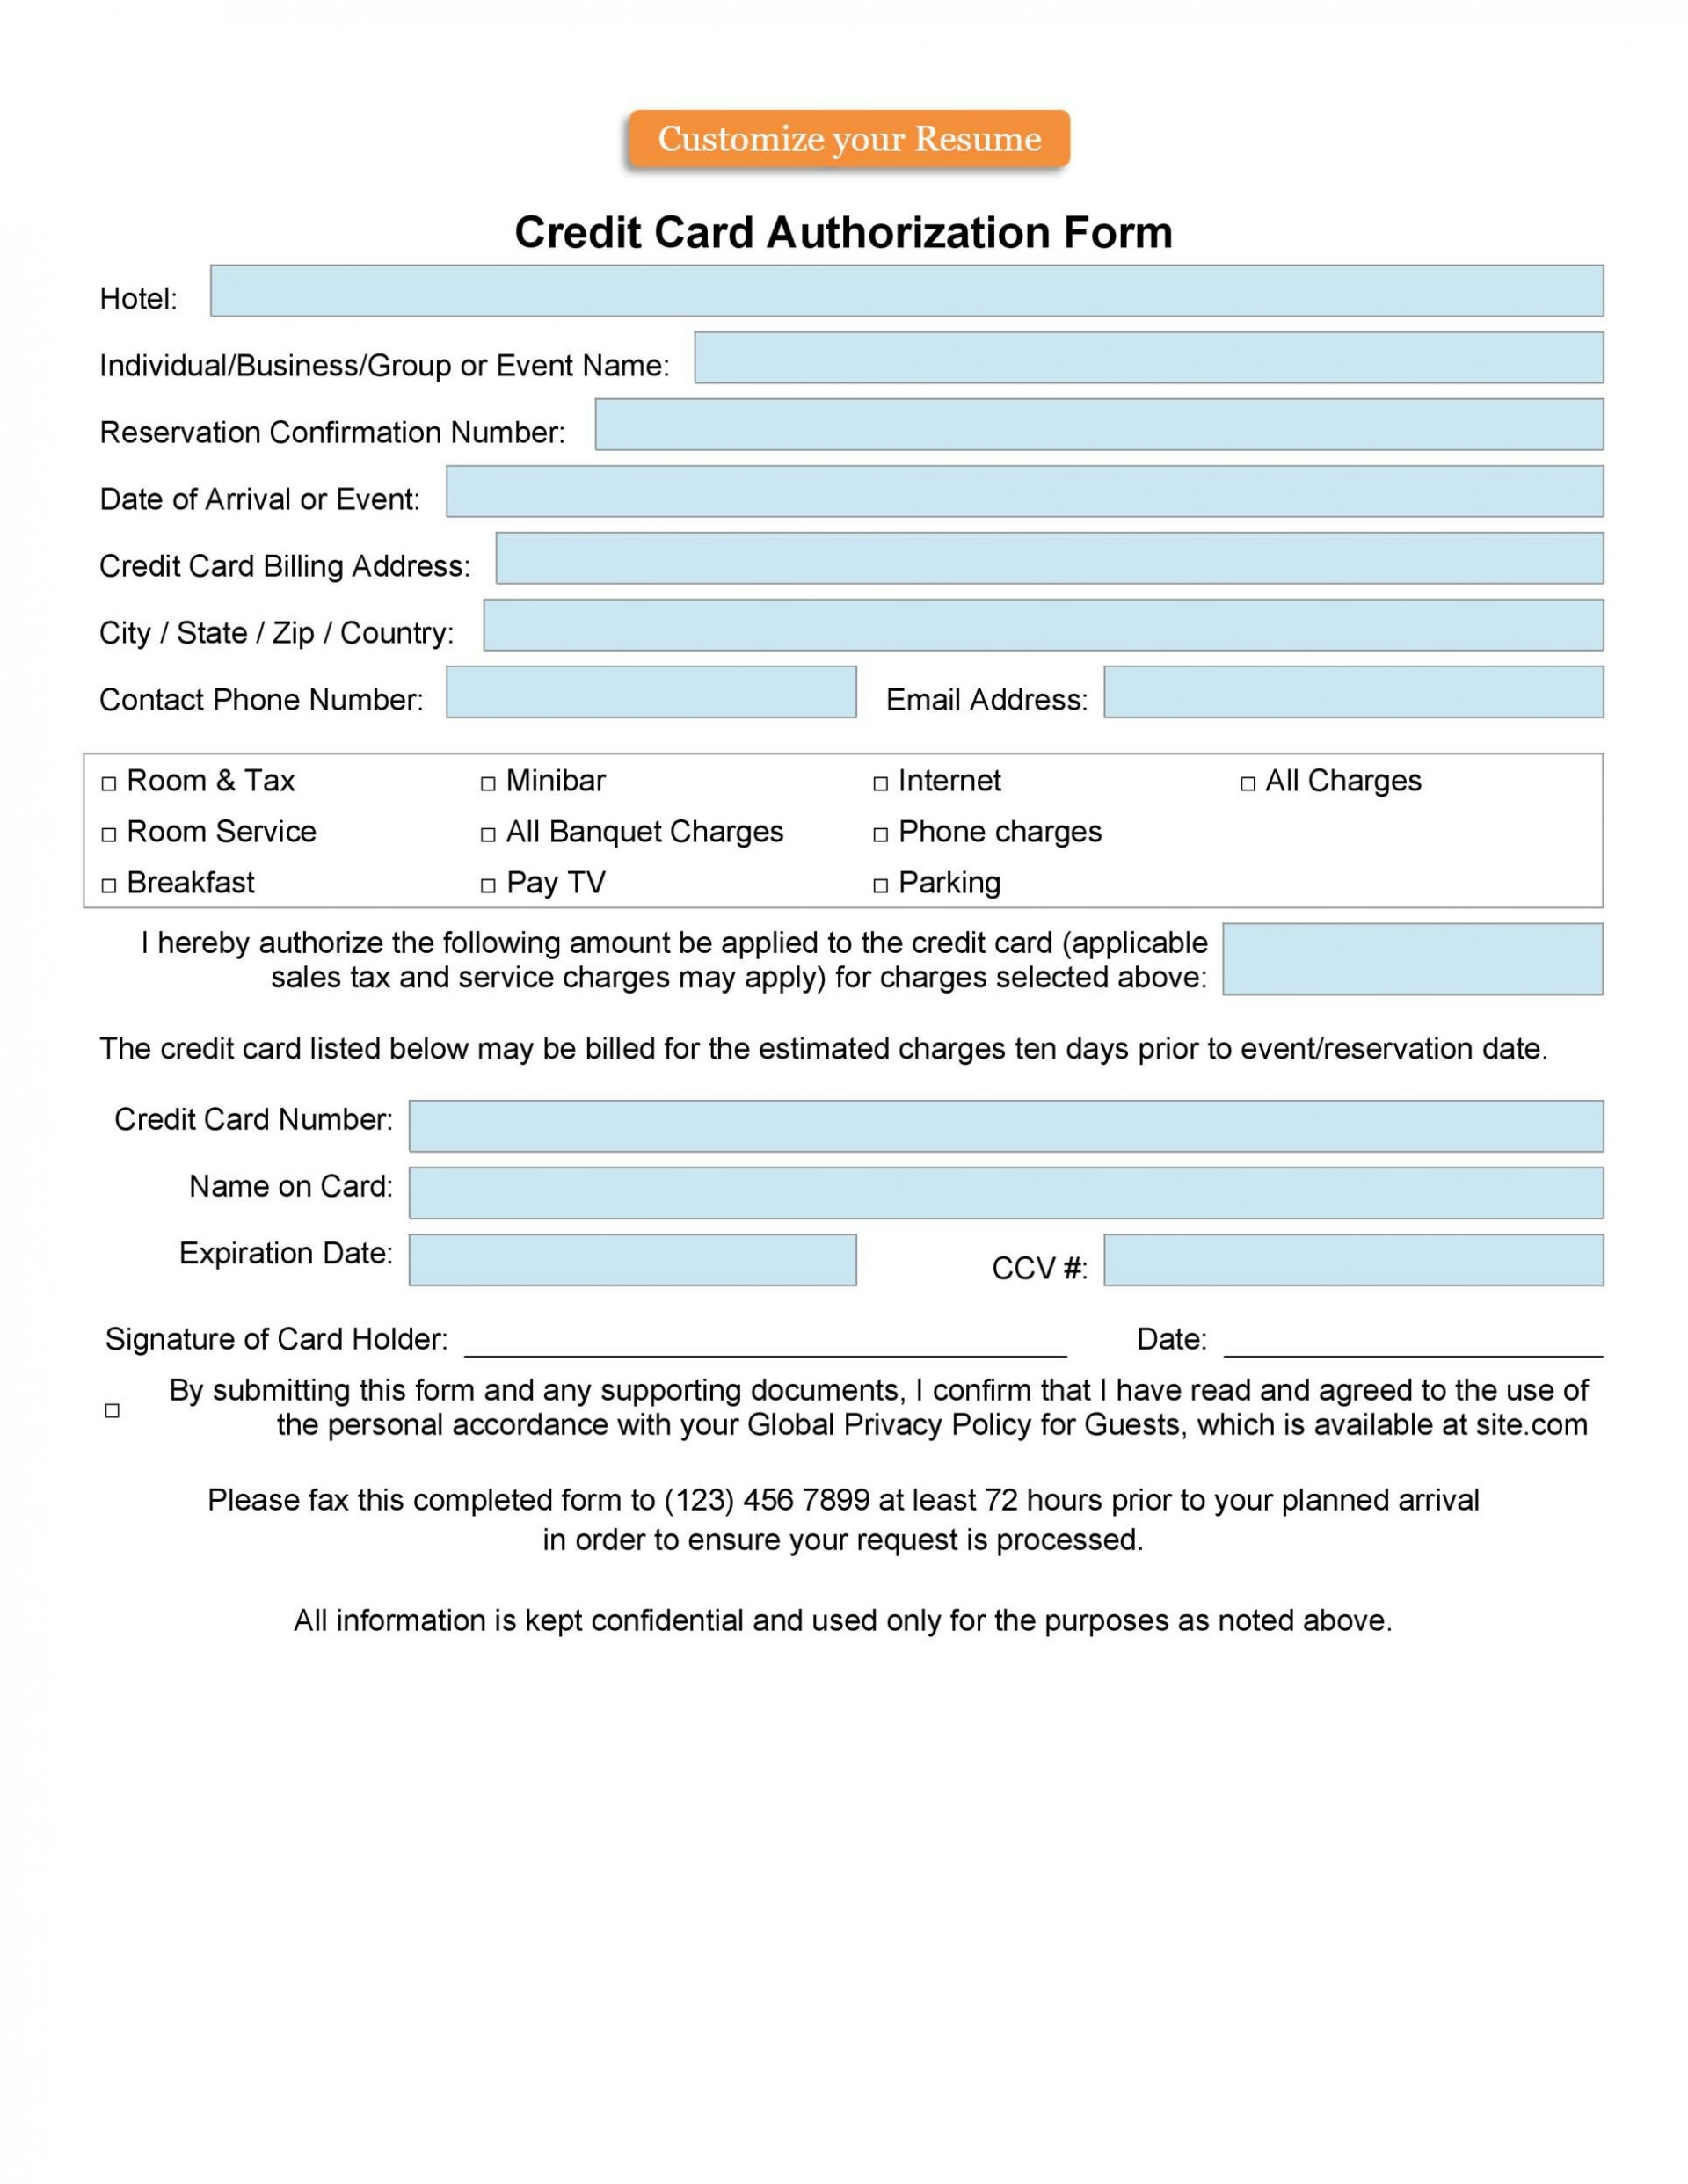 009 Impressive Credit Card Usage Request Form Template Example 1920